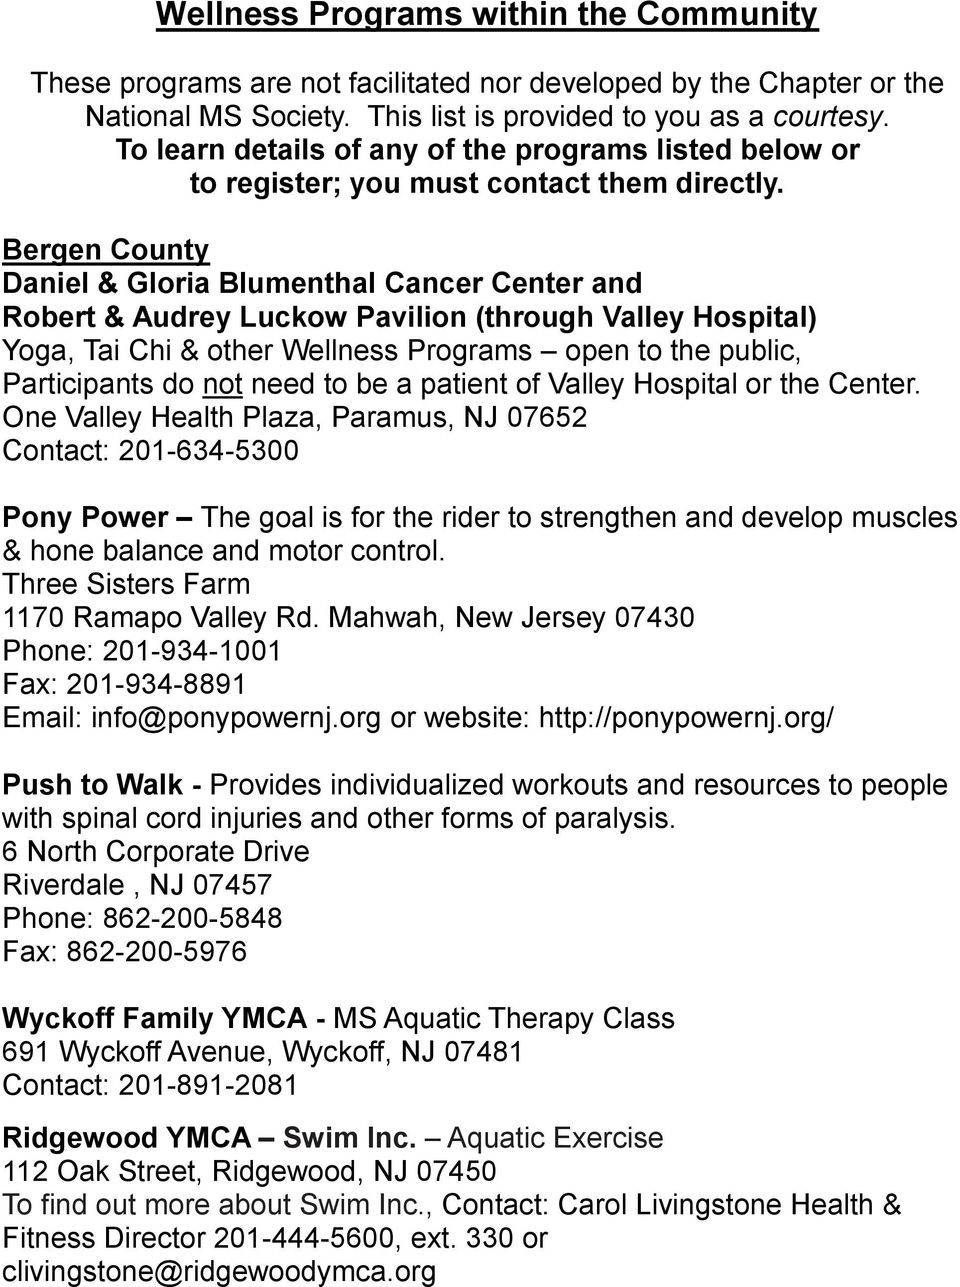 Bergen County Daniel & Gloria Blumenthal Cancer Center and Robert & Audrey Luckow Pavilion (through Valley Hospital) Yoga, Tai Chi & other Wellness Programs open to the public, Participants do not